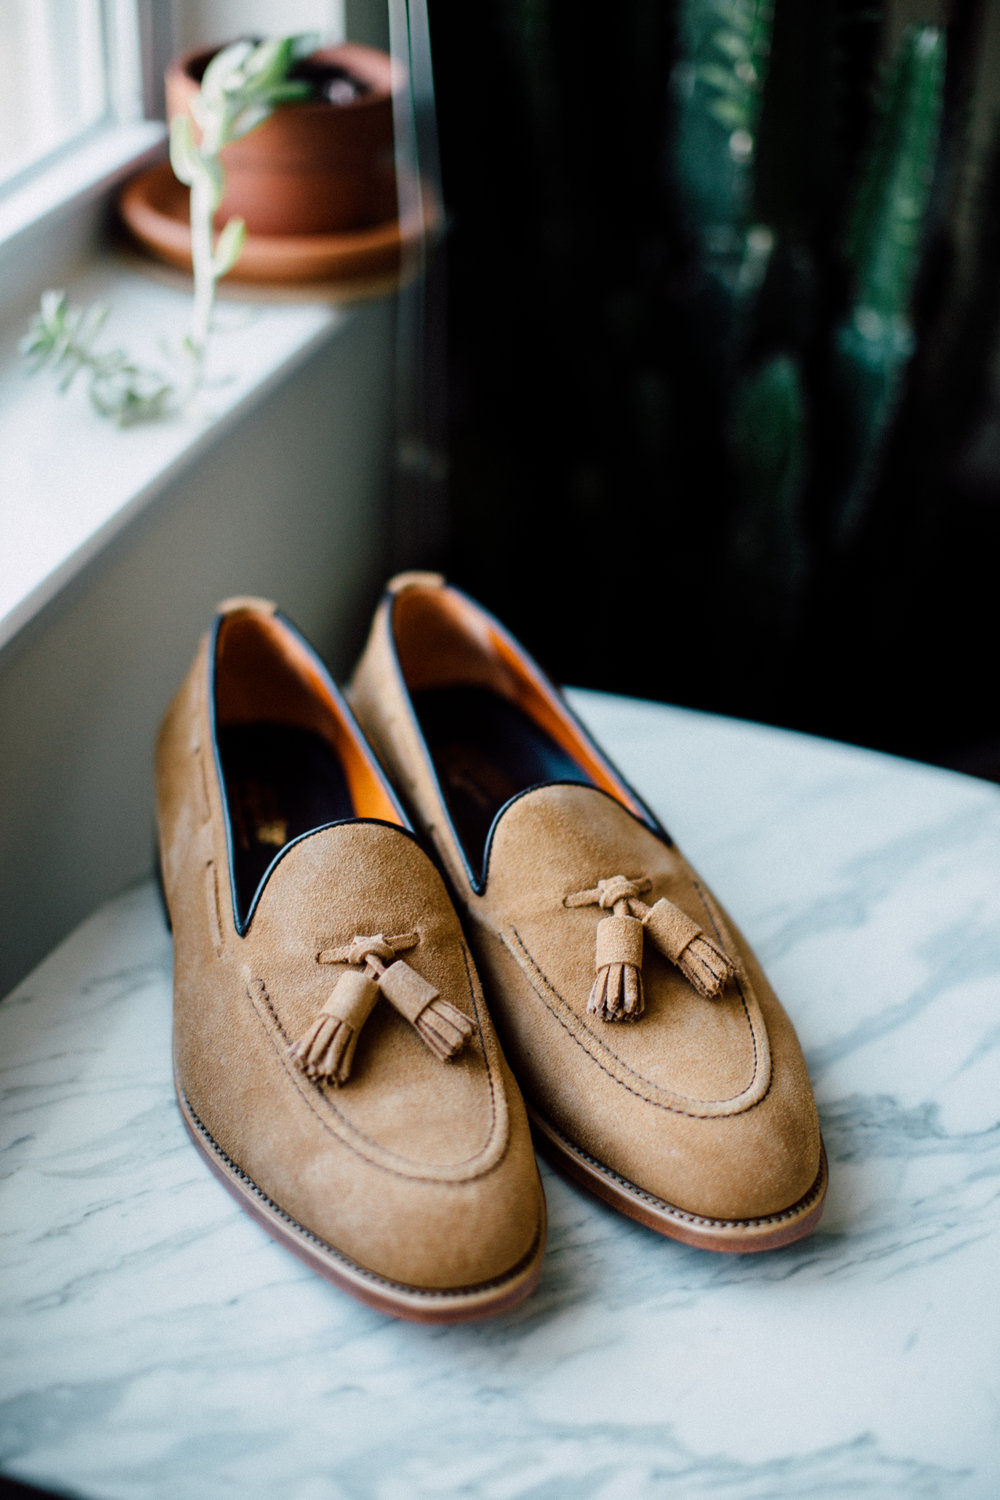 Loafer by Crosby Square SS17 collection.